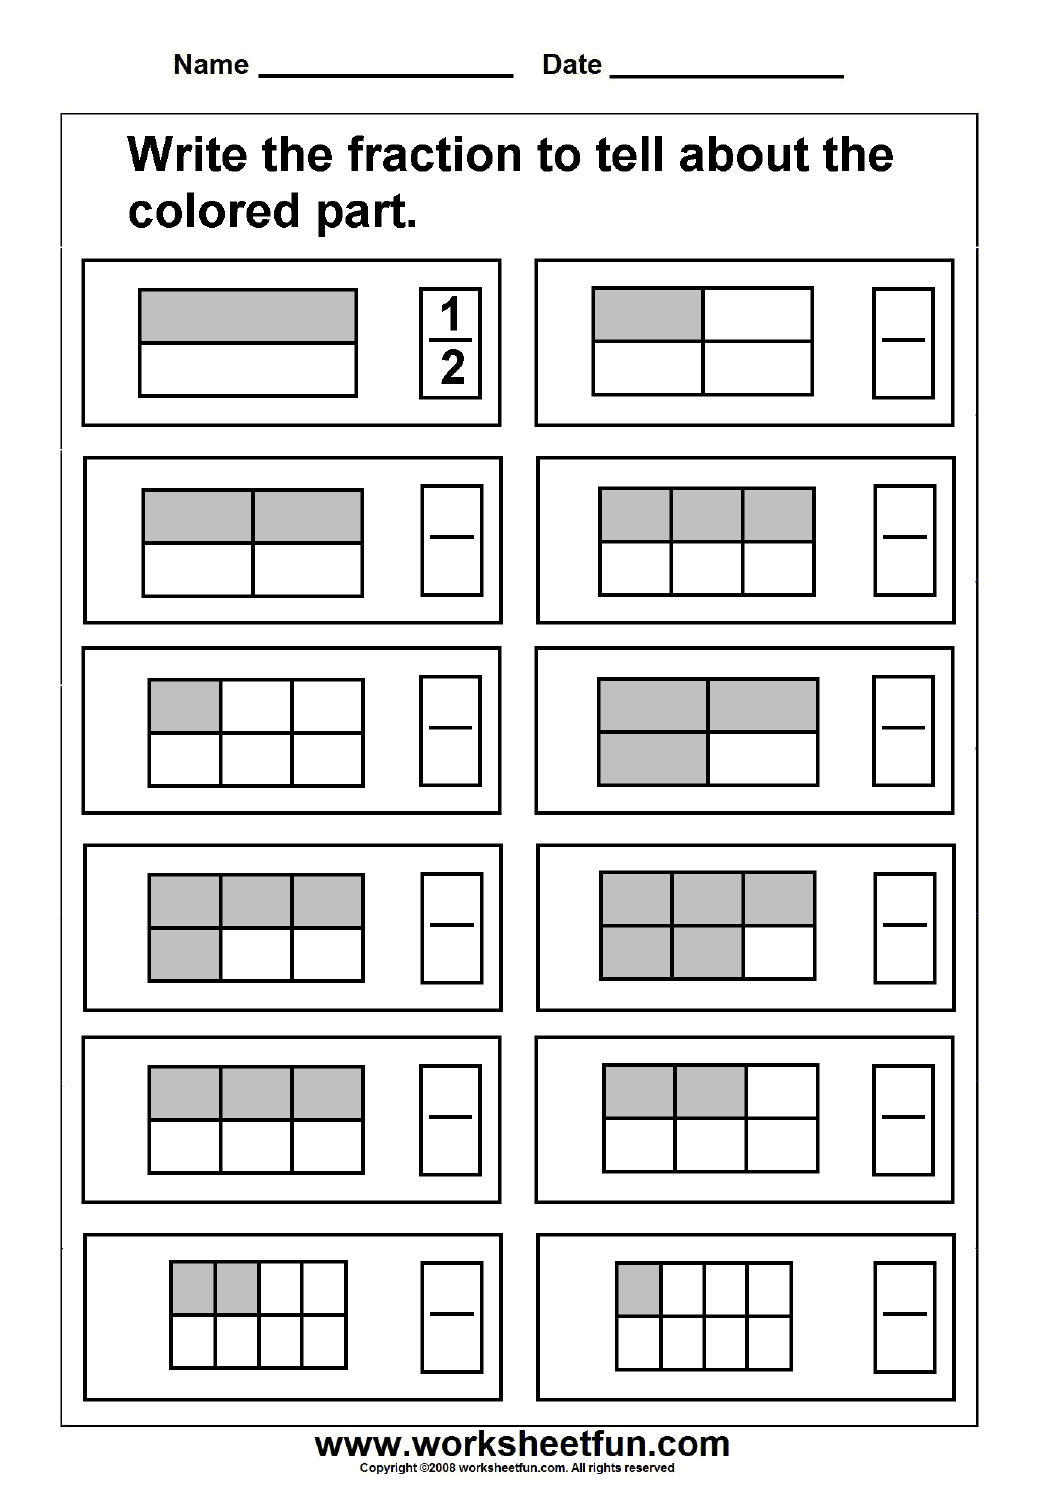 Fraction / FREE Printable Worksheets – Worksheetfun